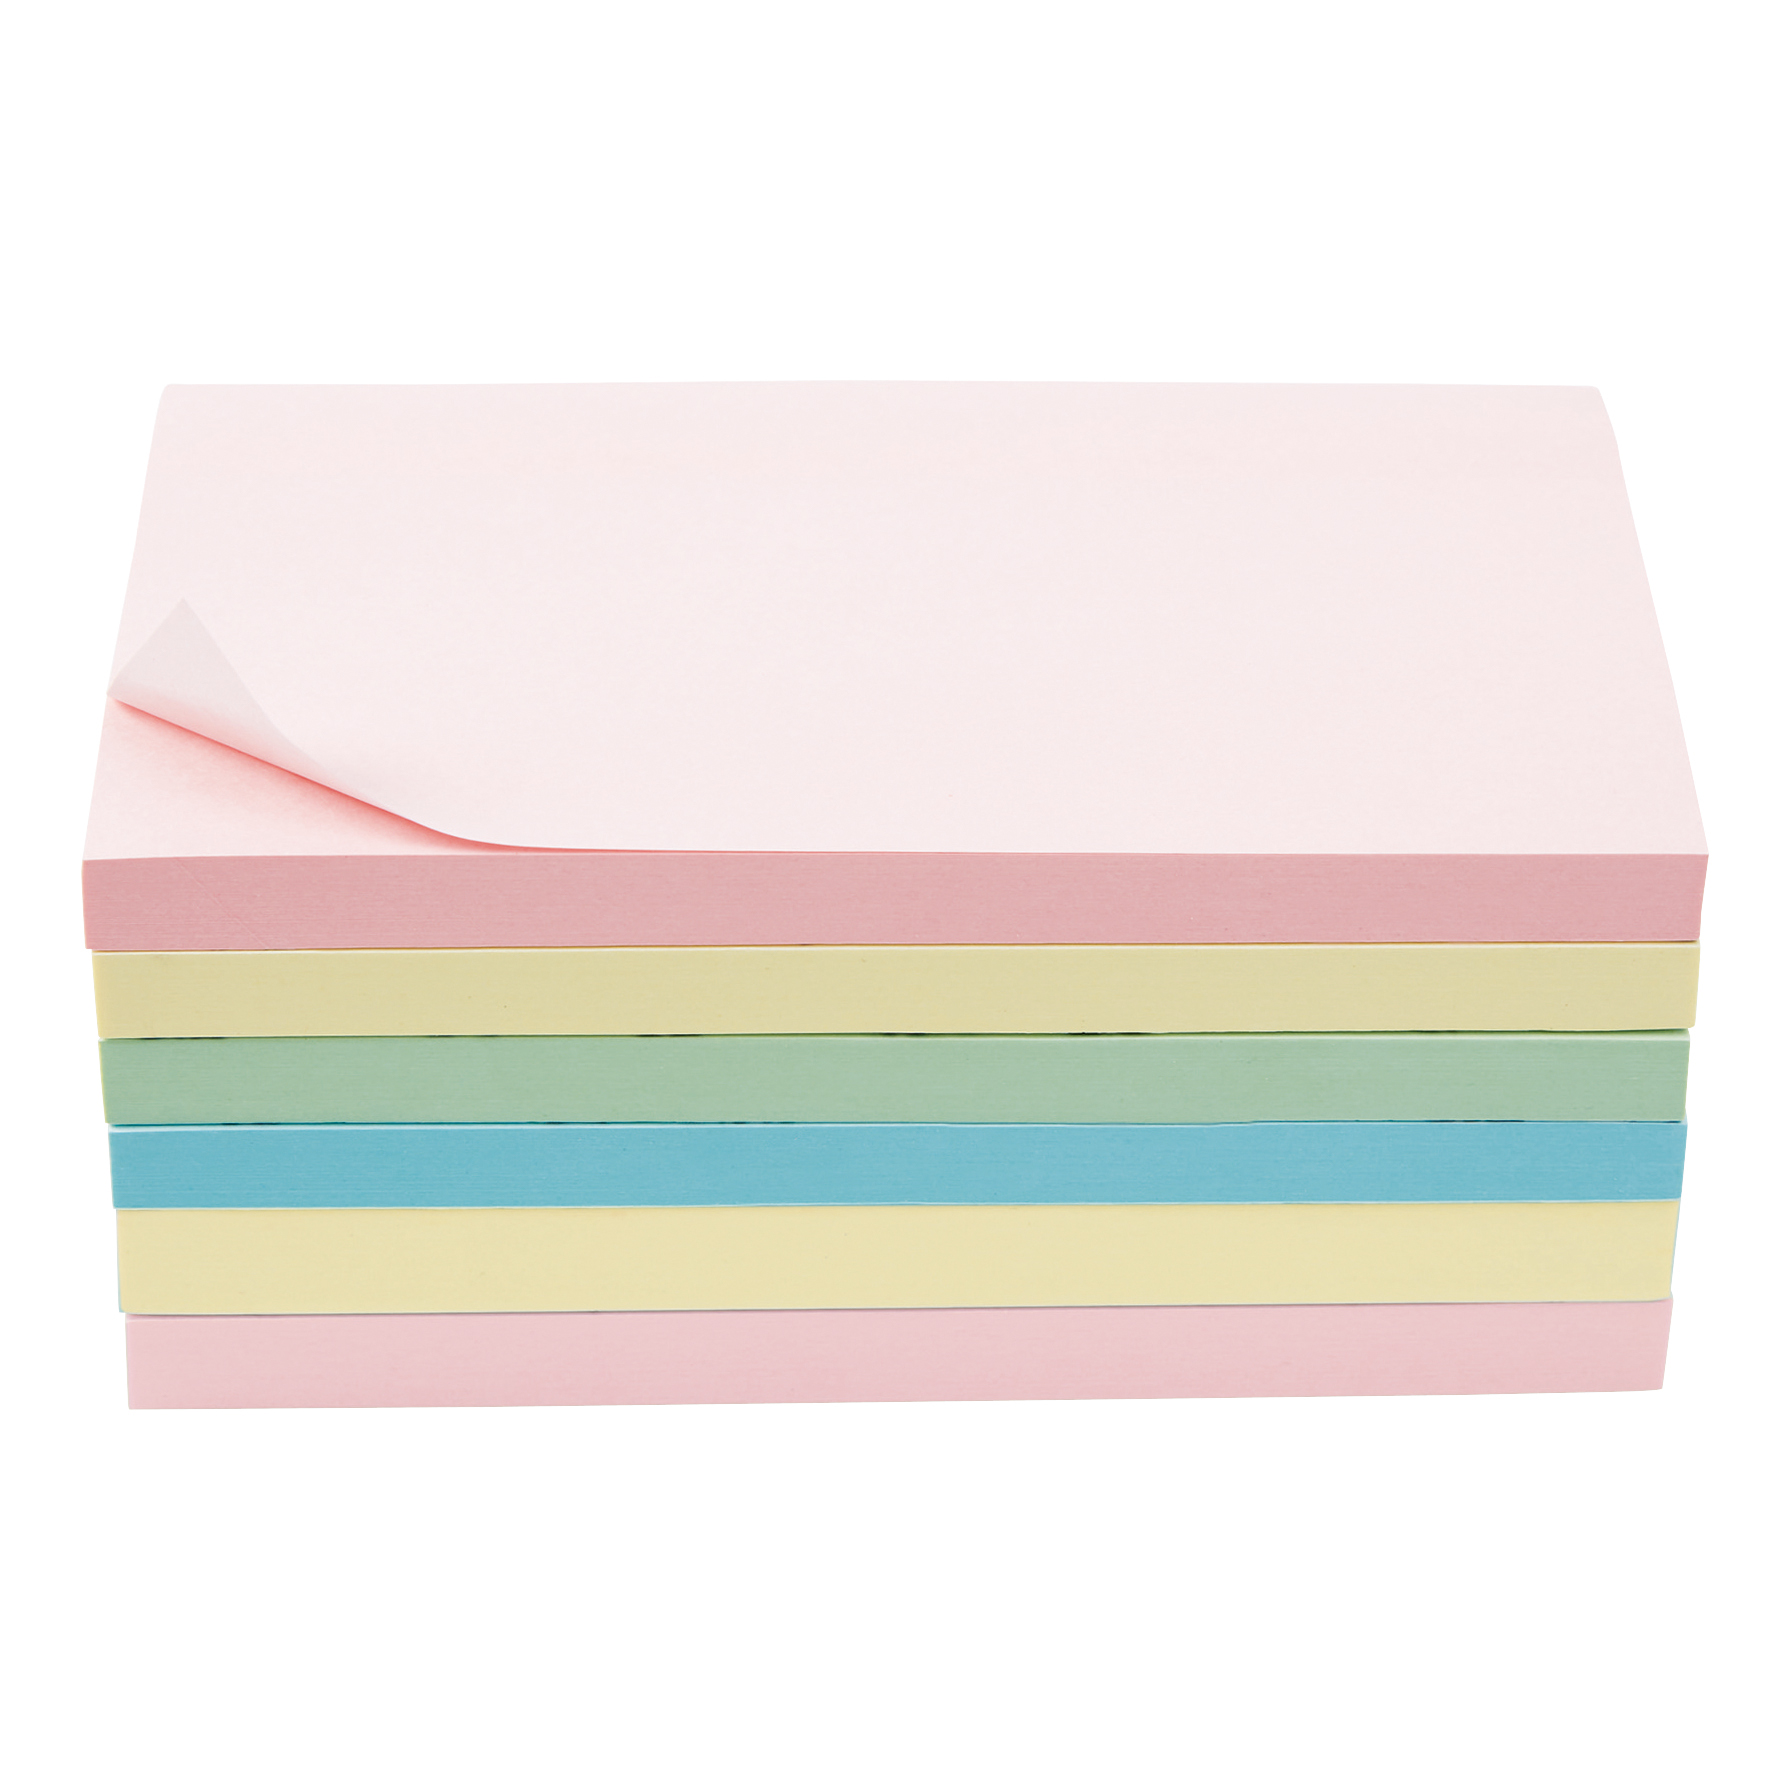 Self adhesive note paper 5 Star Office Extra Sticky Re-Move Notes Pad of 90 Sheets 76x127mm 4 Assorted Pastel Colours Pack 6